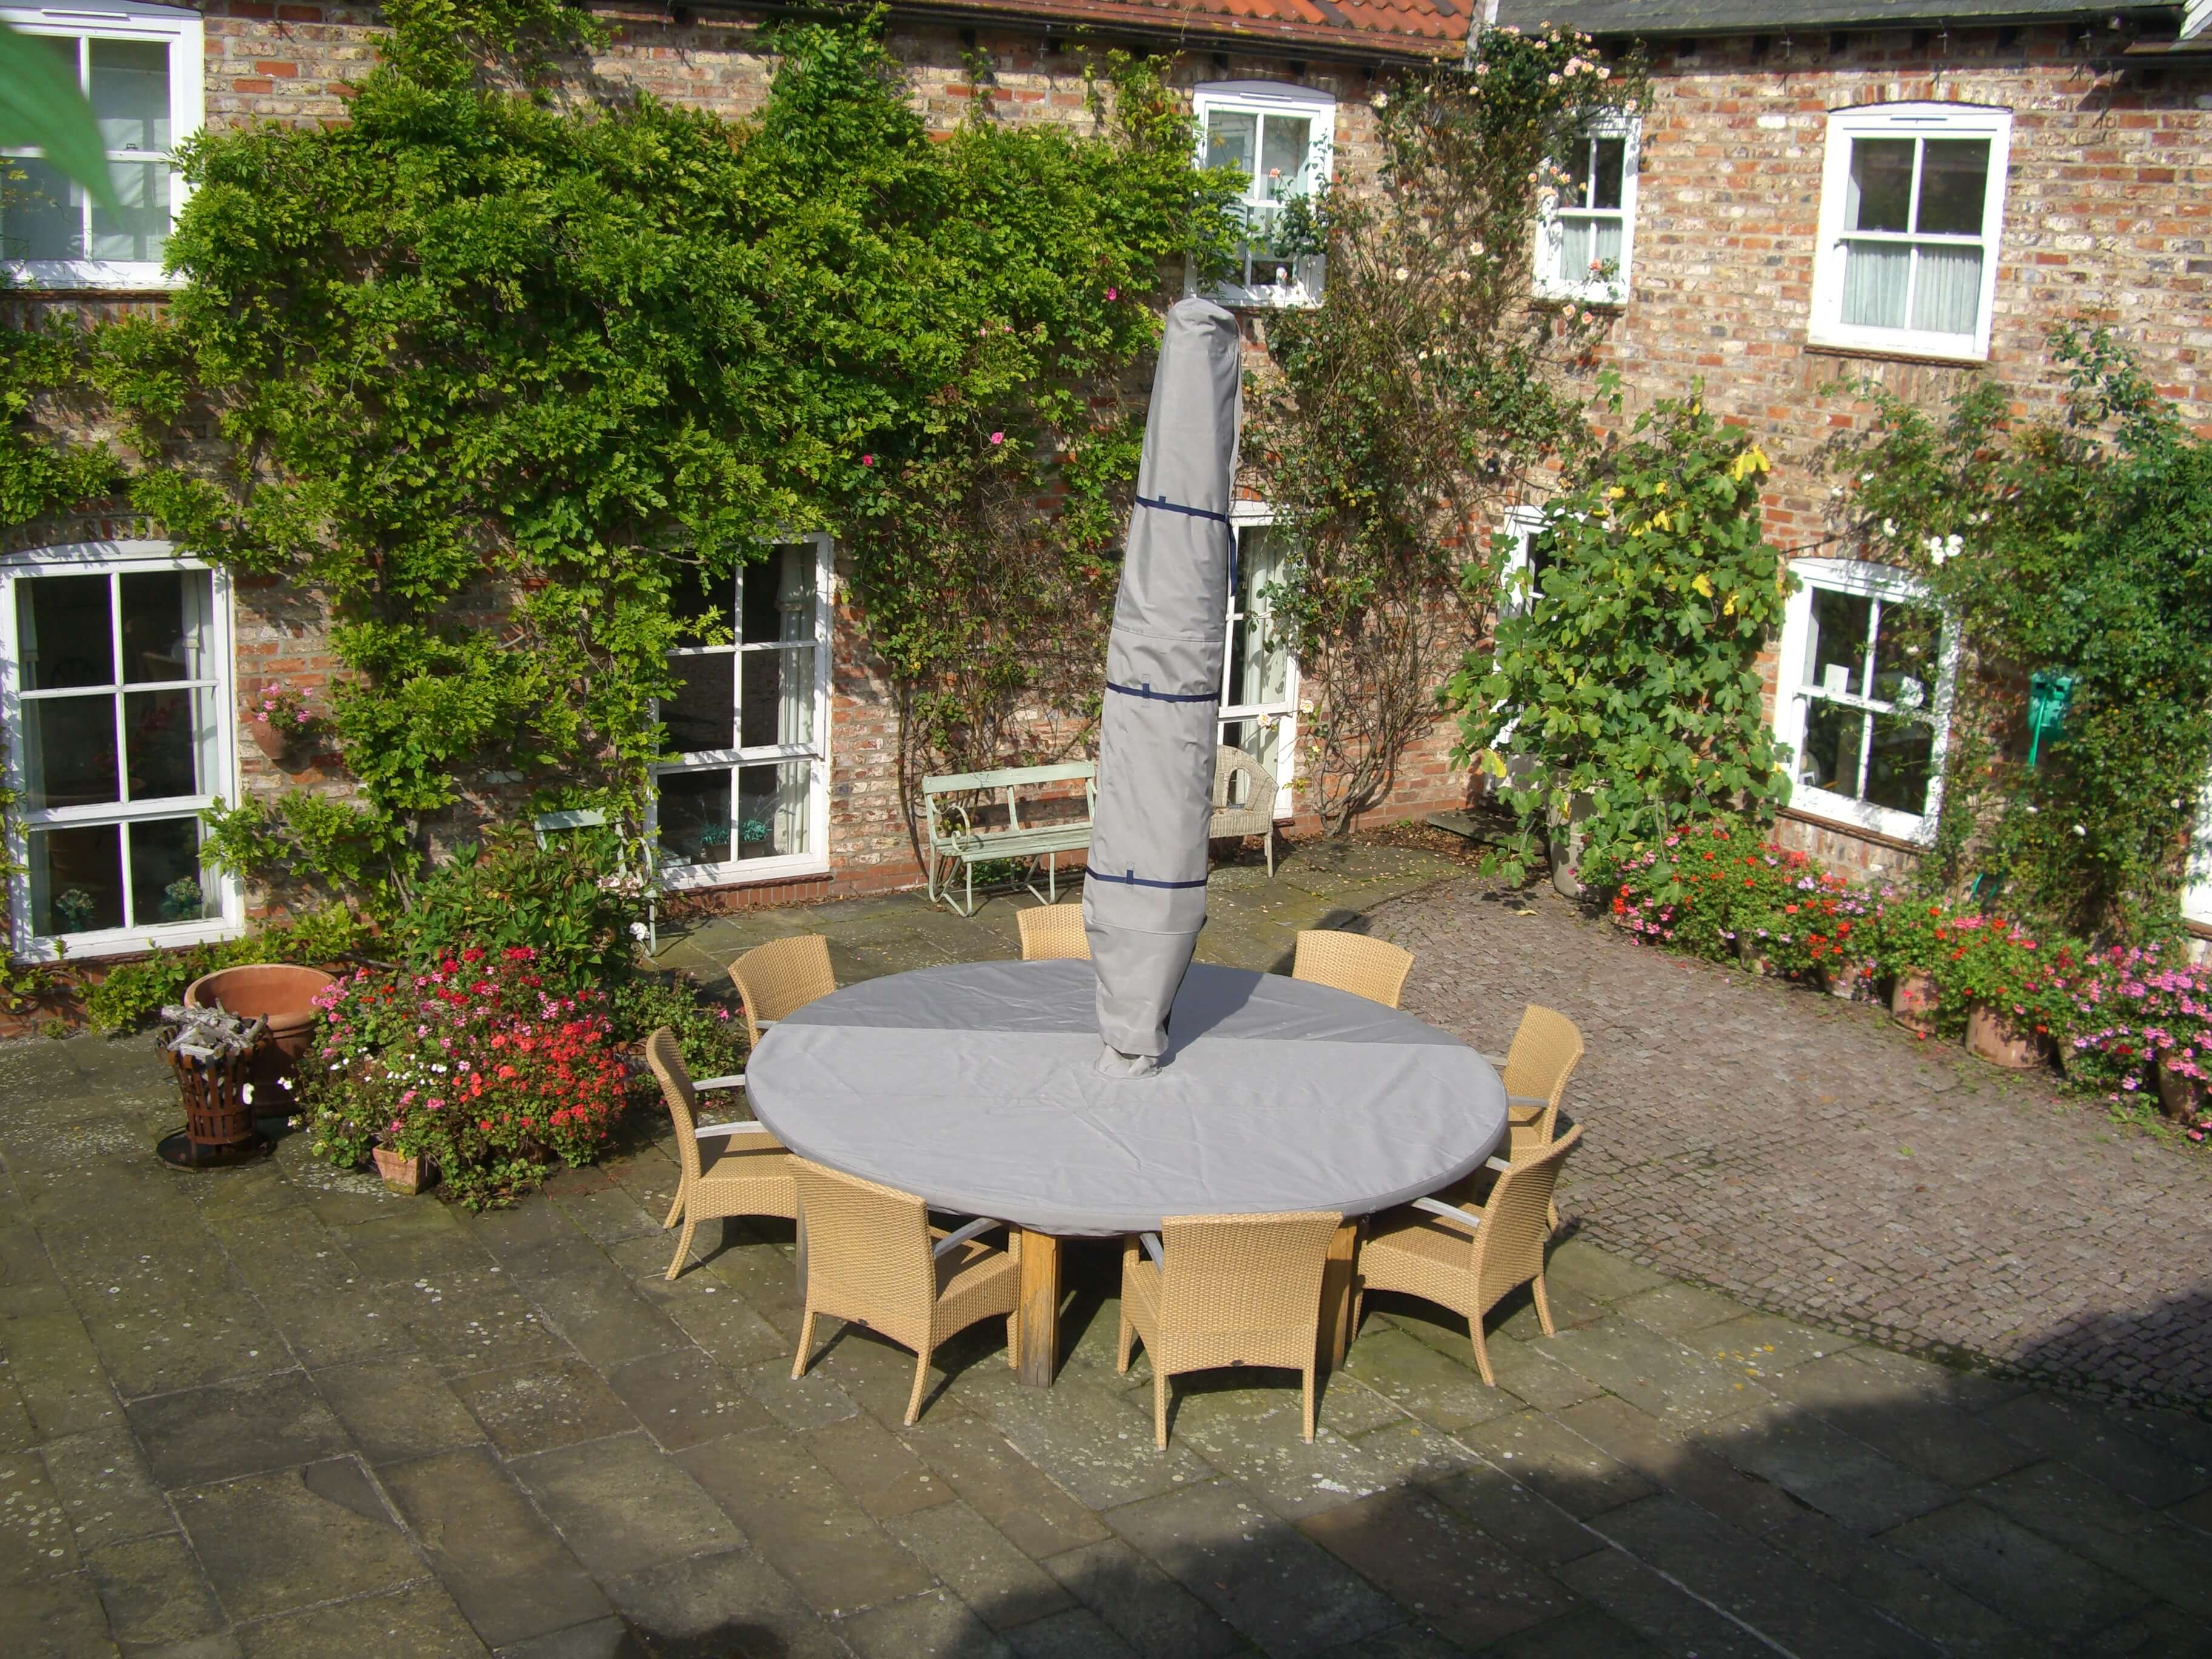 Custom Protective Grey Garden Furniture Overall Cover